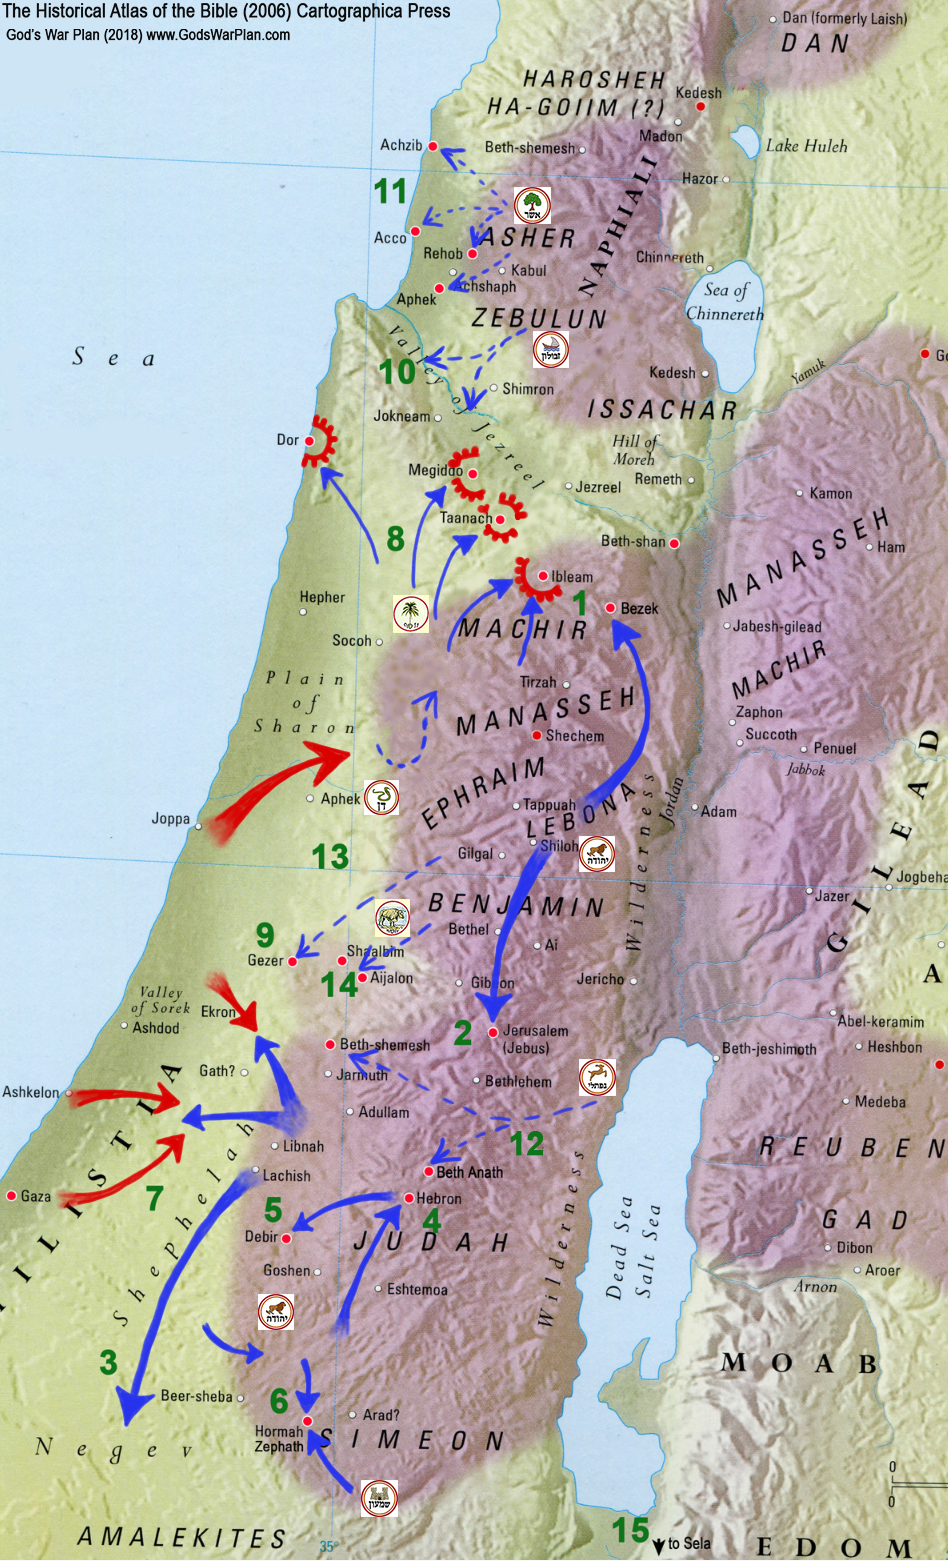 military history, ancient war, battle map, battle strategy, military tactics, ancient middle east map, ancient Hebrew weapons, Occupation of Canaan, Occupation of the Promised Land, death of Joshua, Judges 1-2